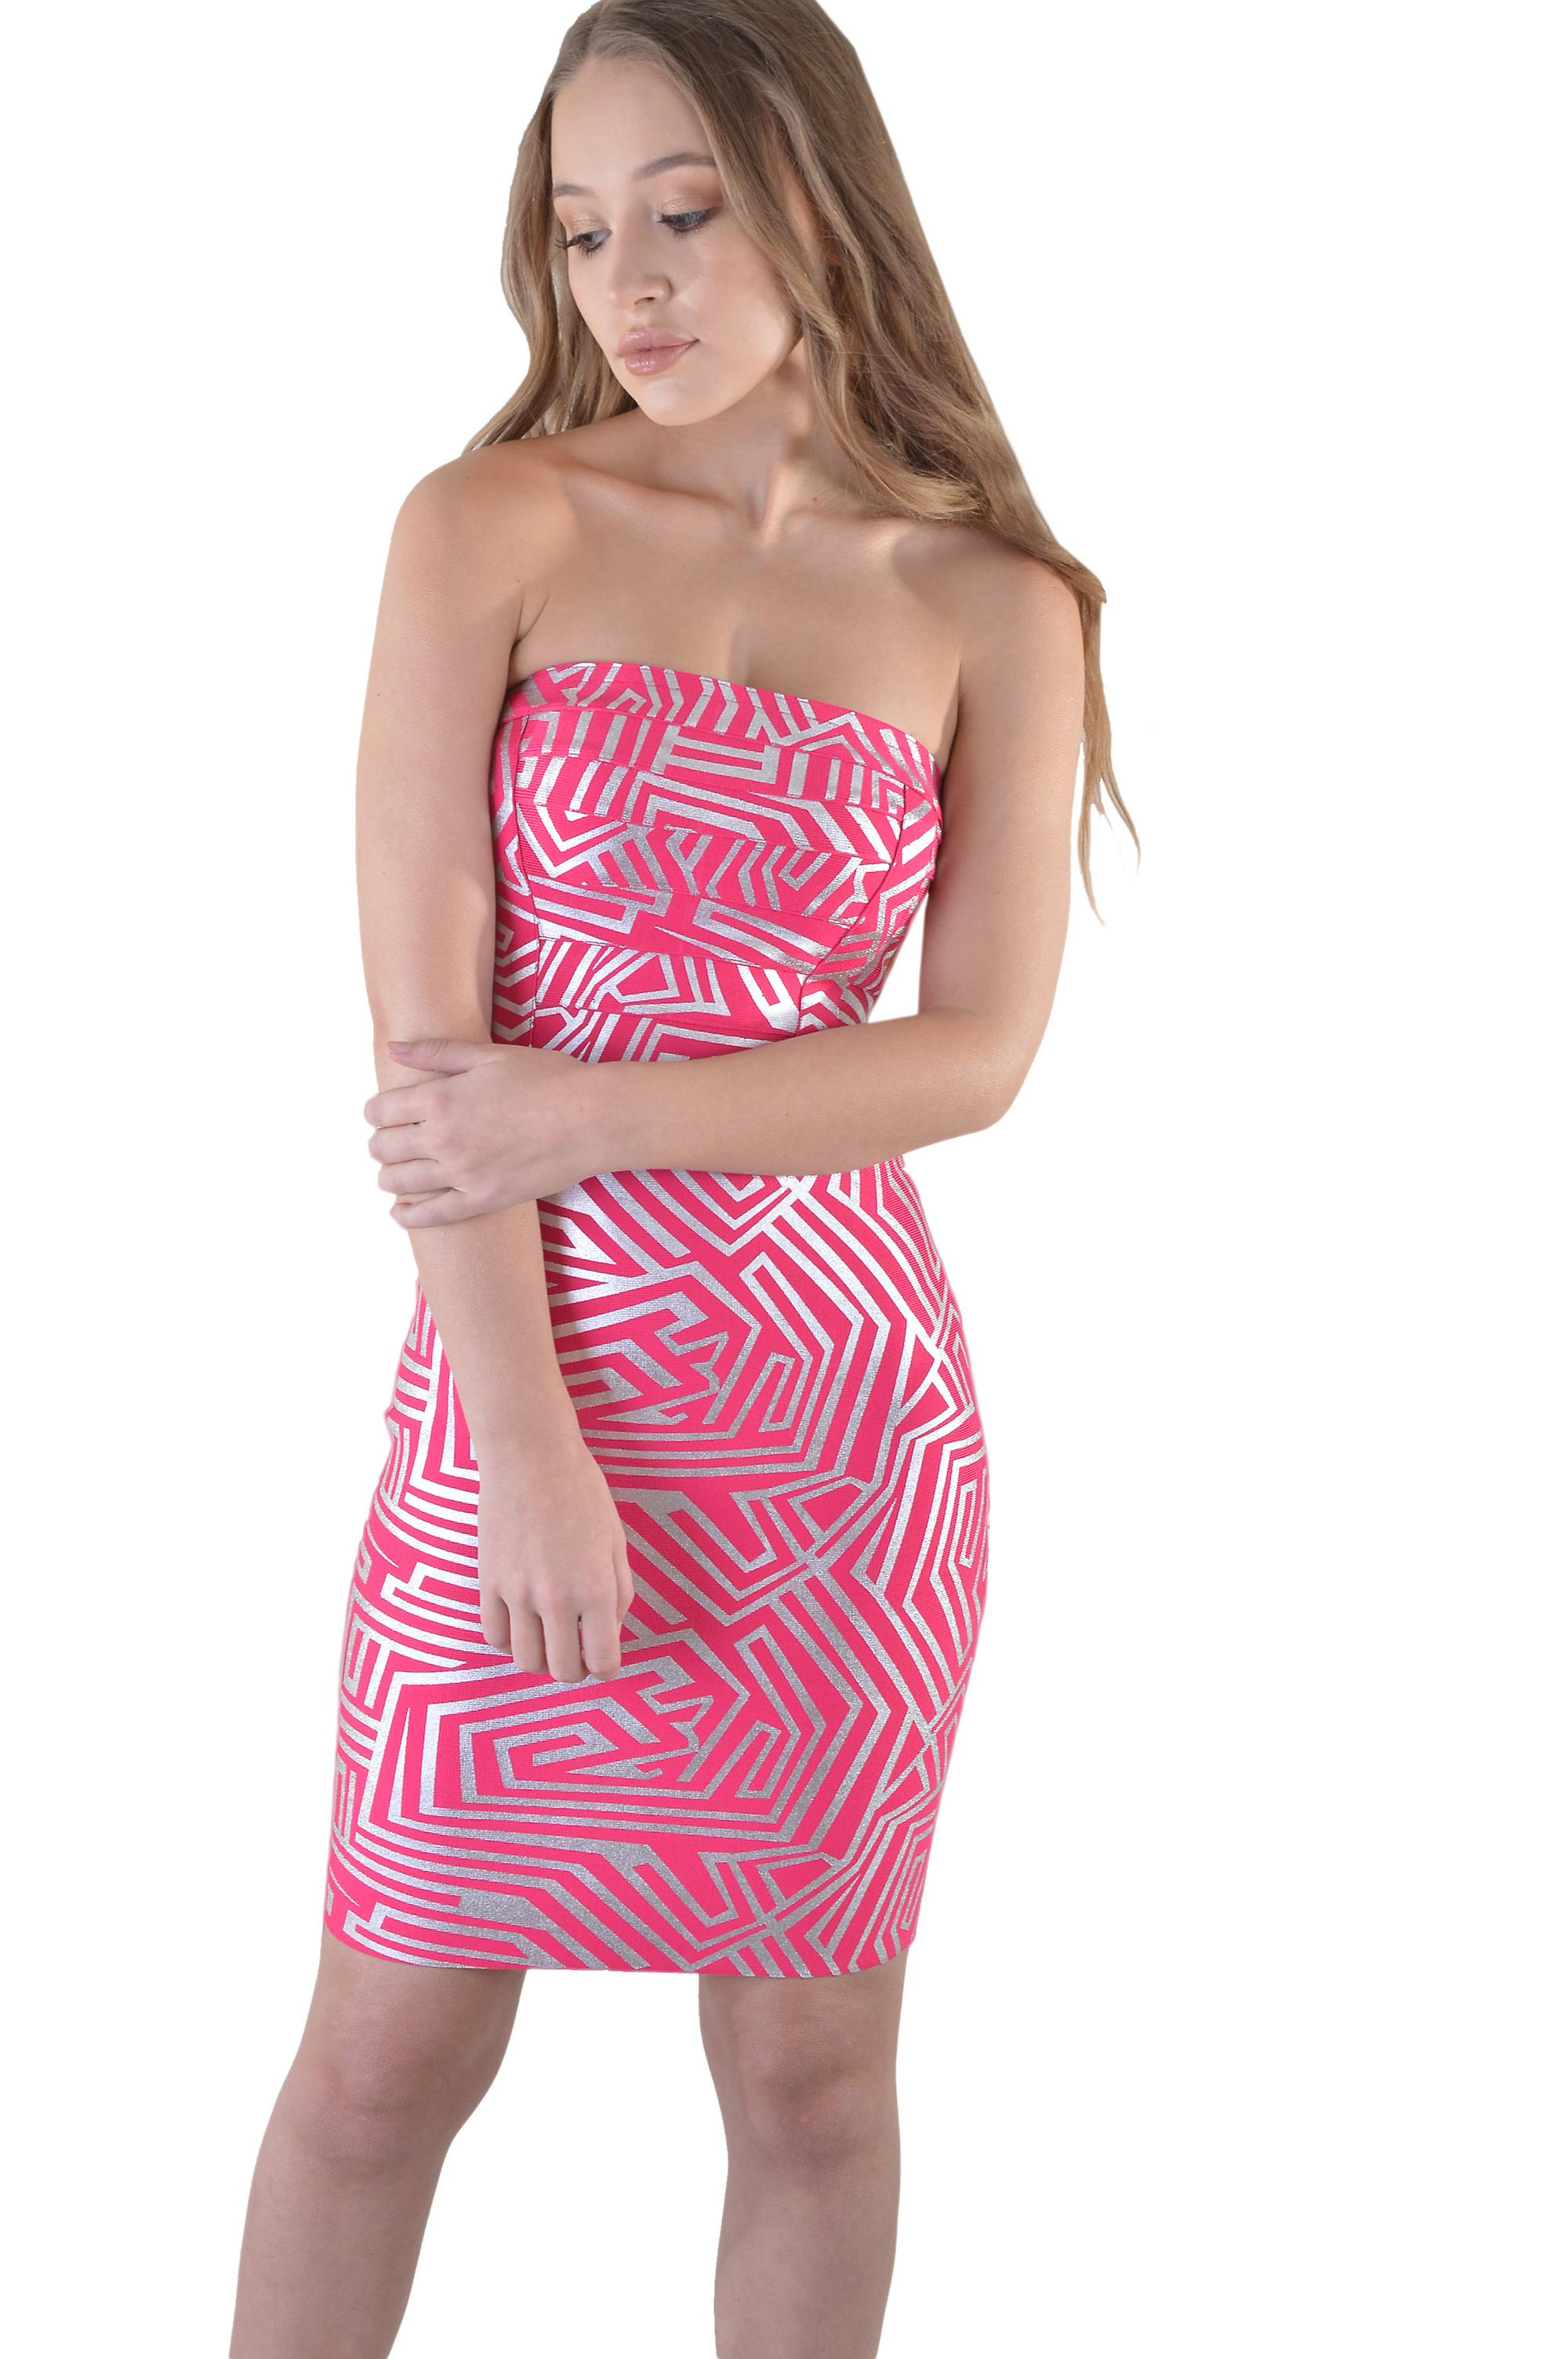 LMS Short Strapless Bandage Dress In Pink And Silver